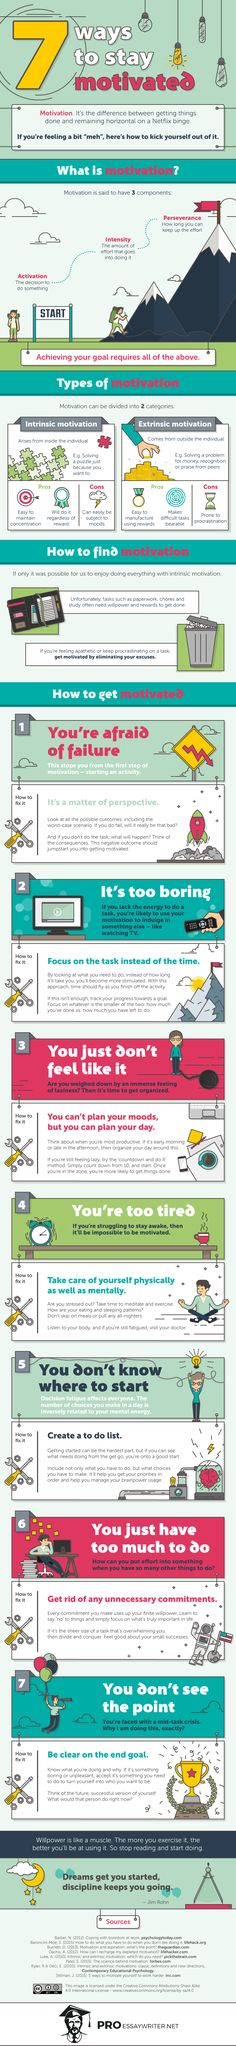 7 Ways to Stay Motivated at Work [Infographic], via @HubSpot